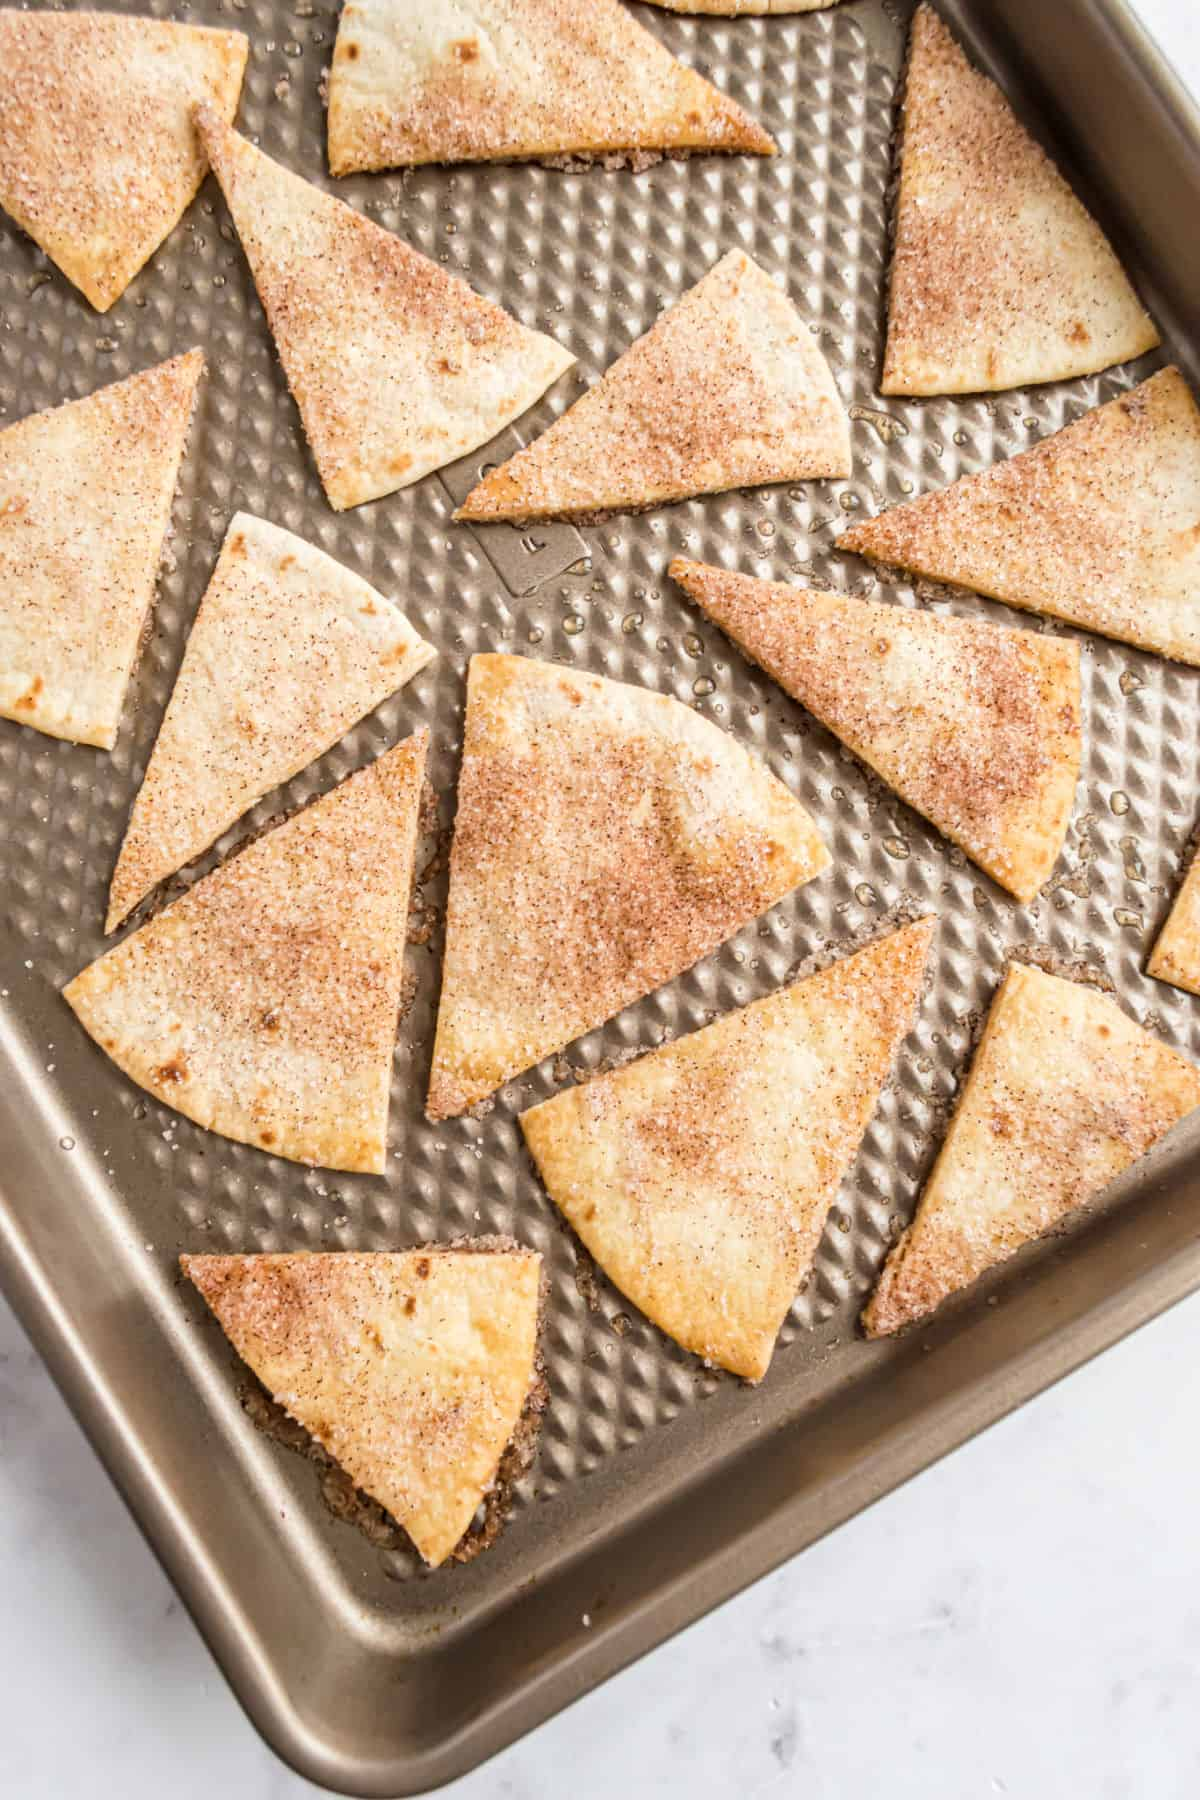 Cinnamon tortilla chips on a baking sheet.